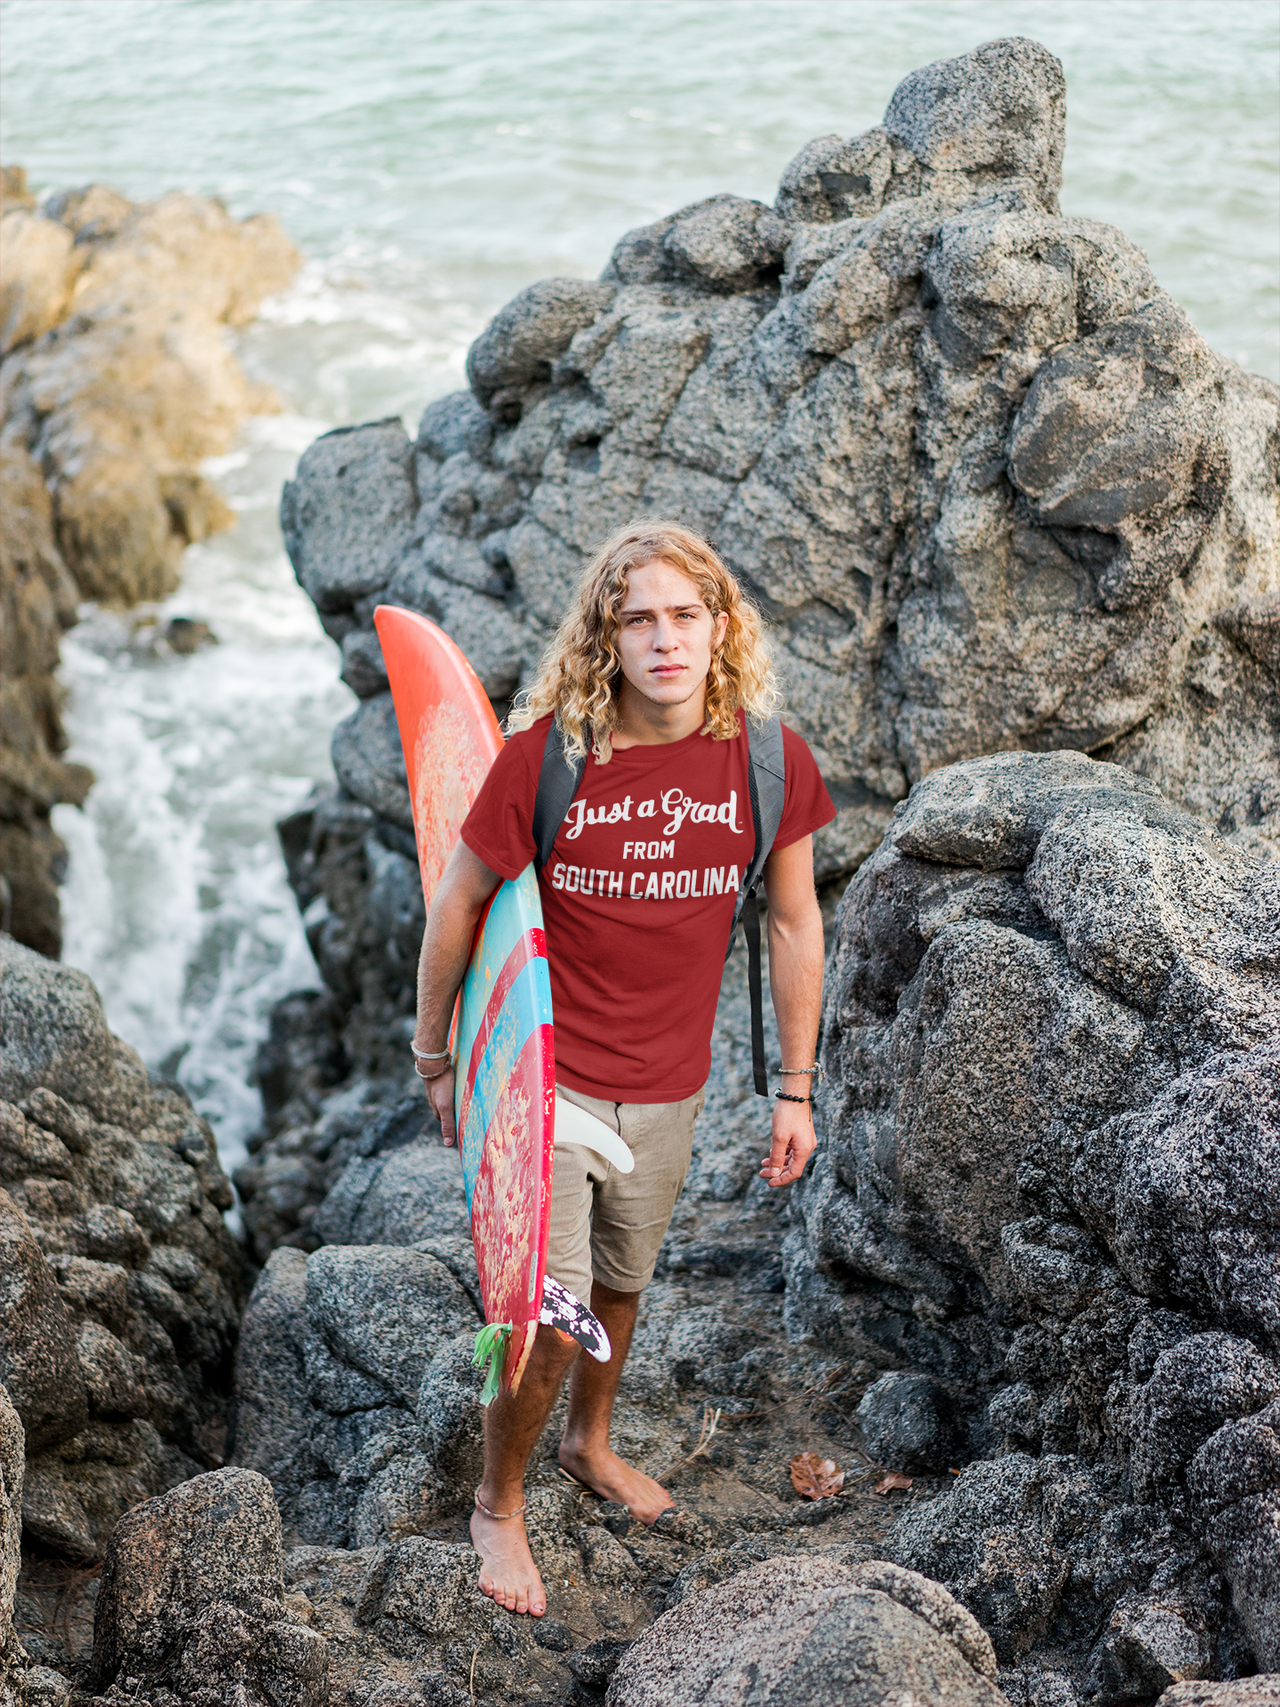 surfer-dude-wearing-a-t-shirt-mockup-on-the-rocks-a18801.png